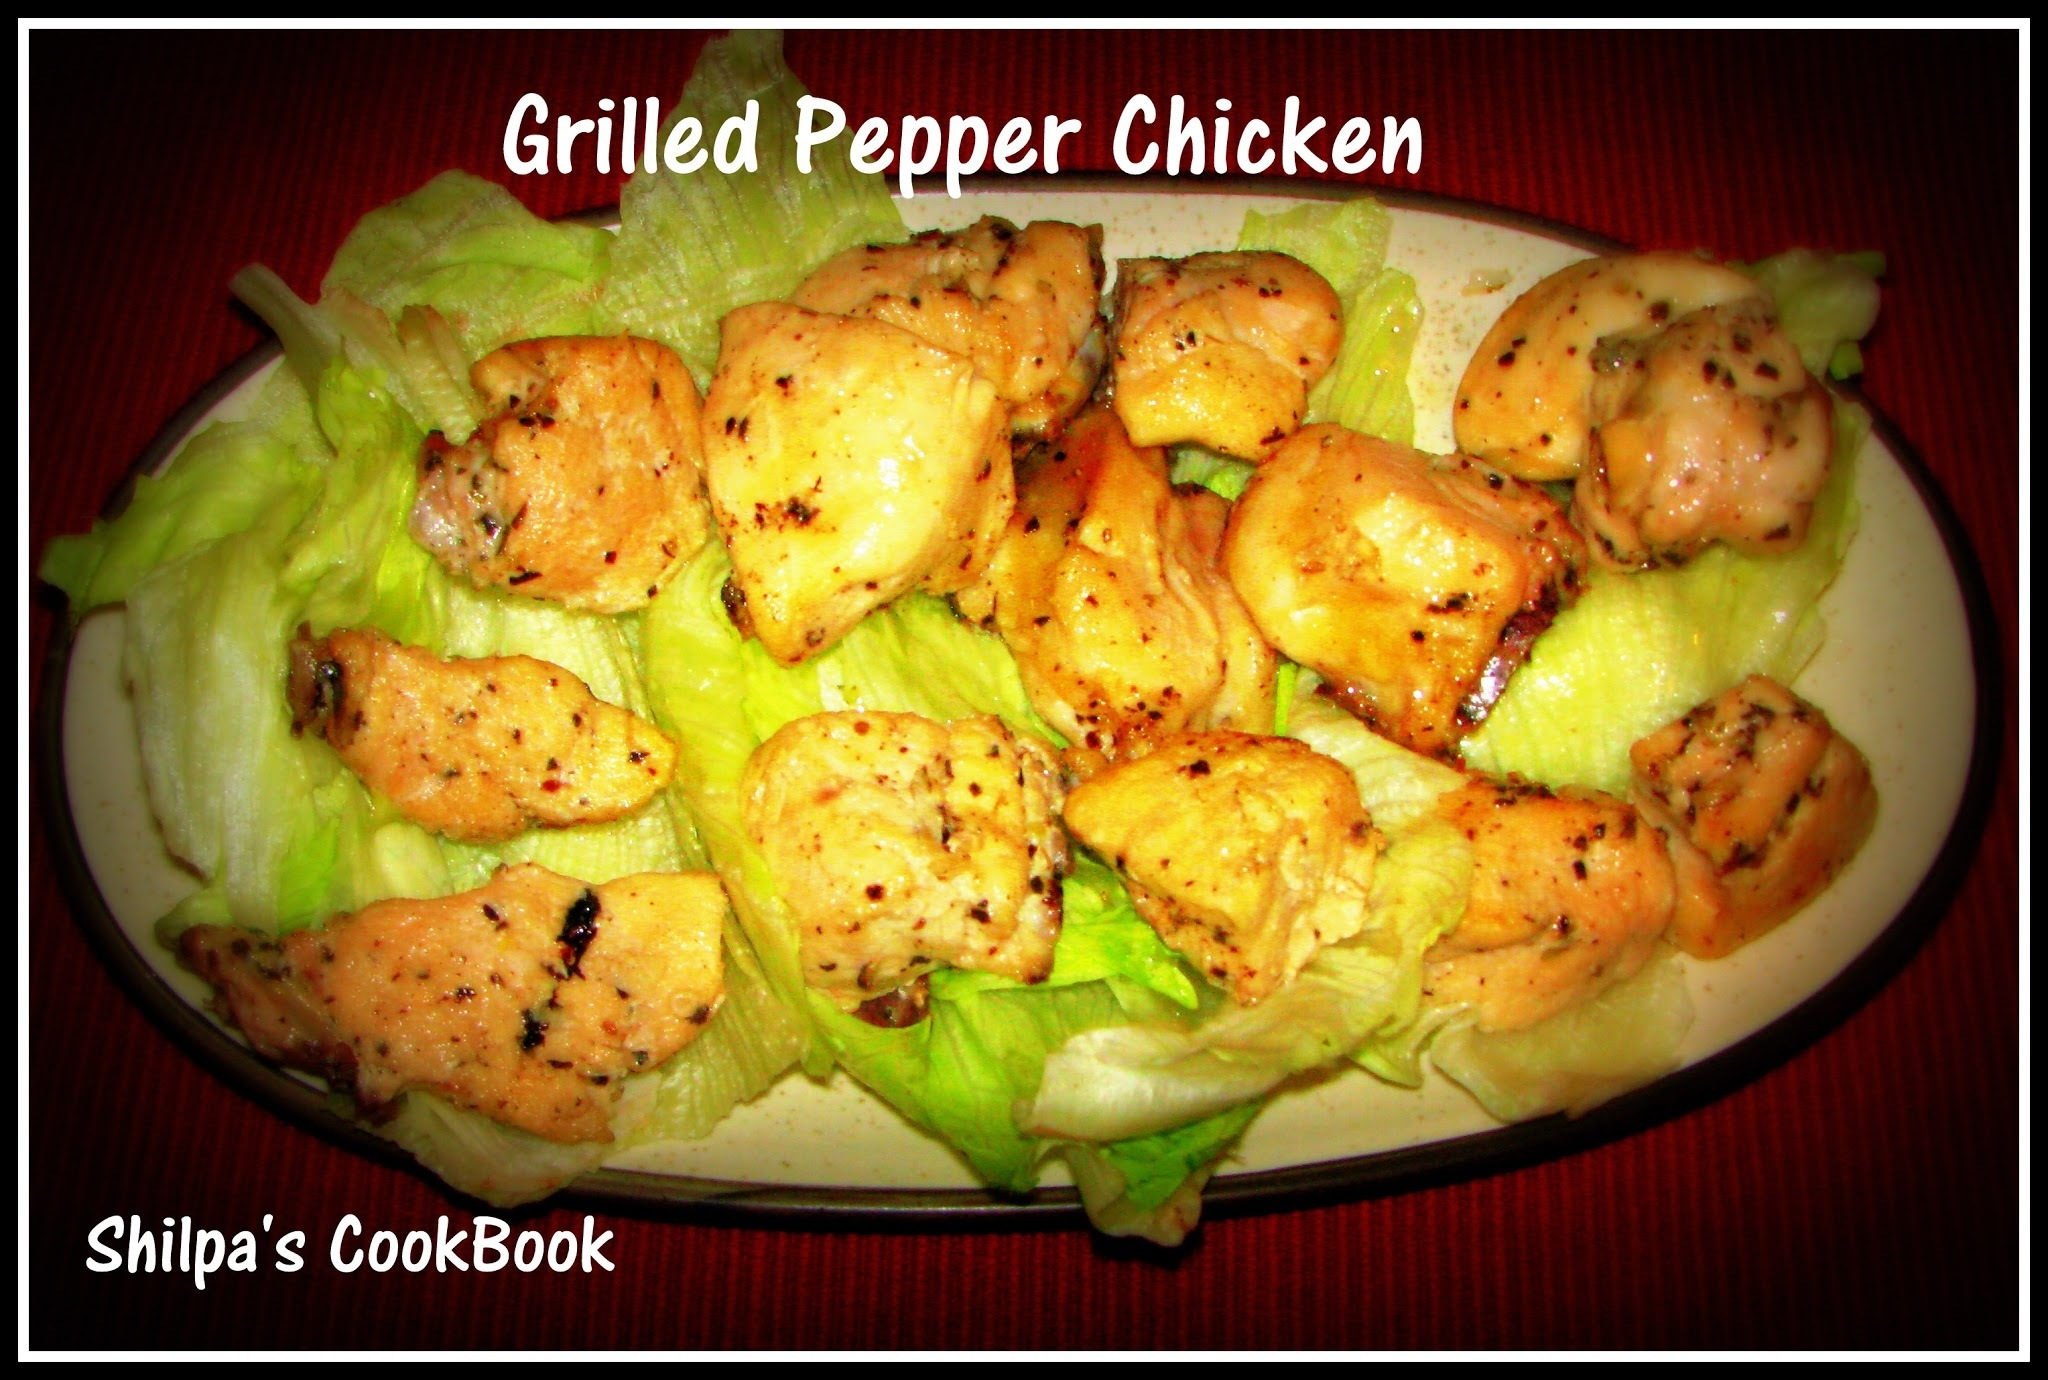 Grilled Pepper Chicken